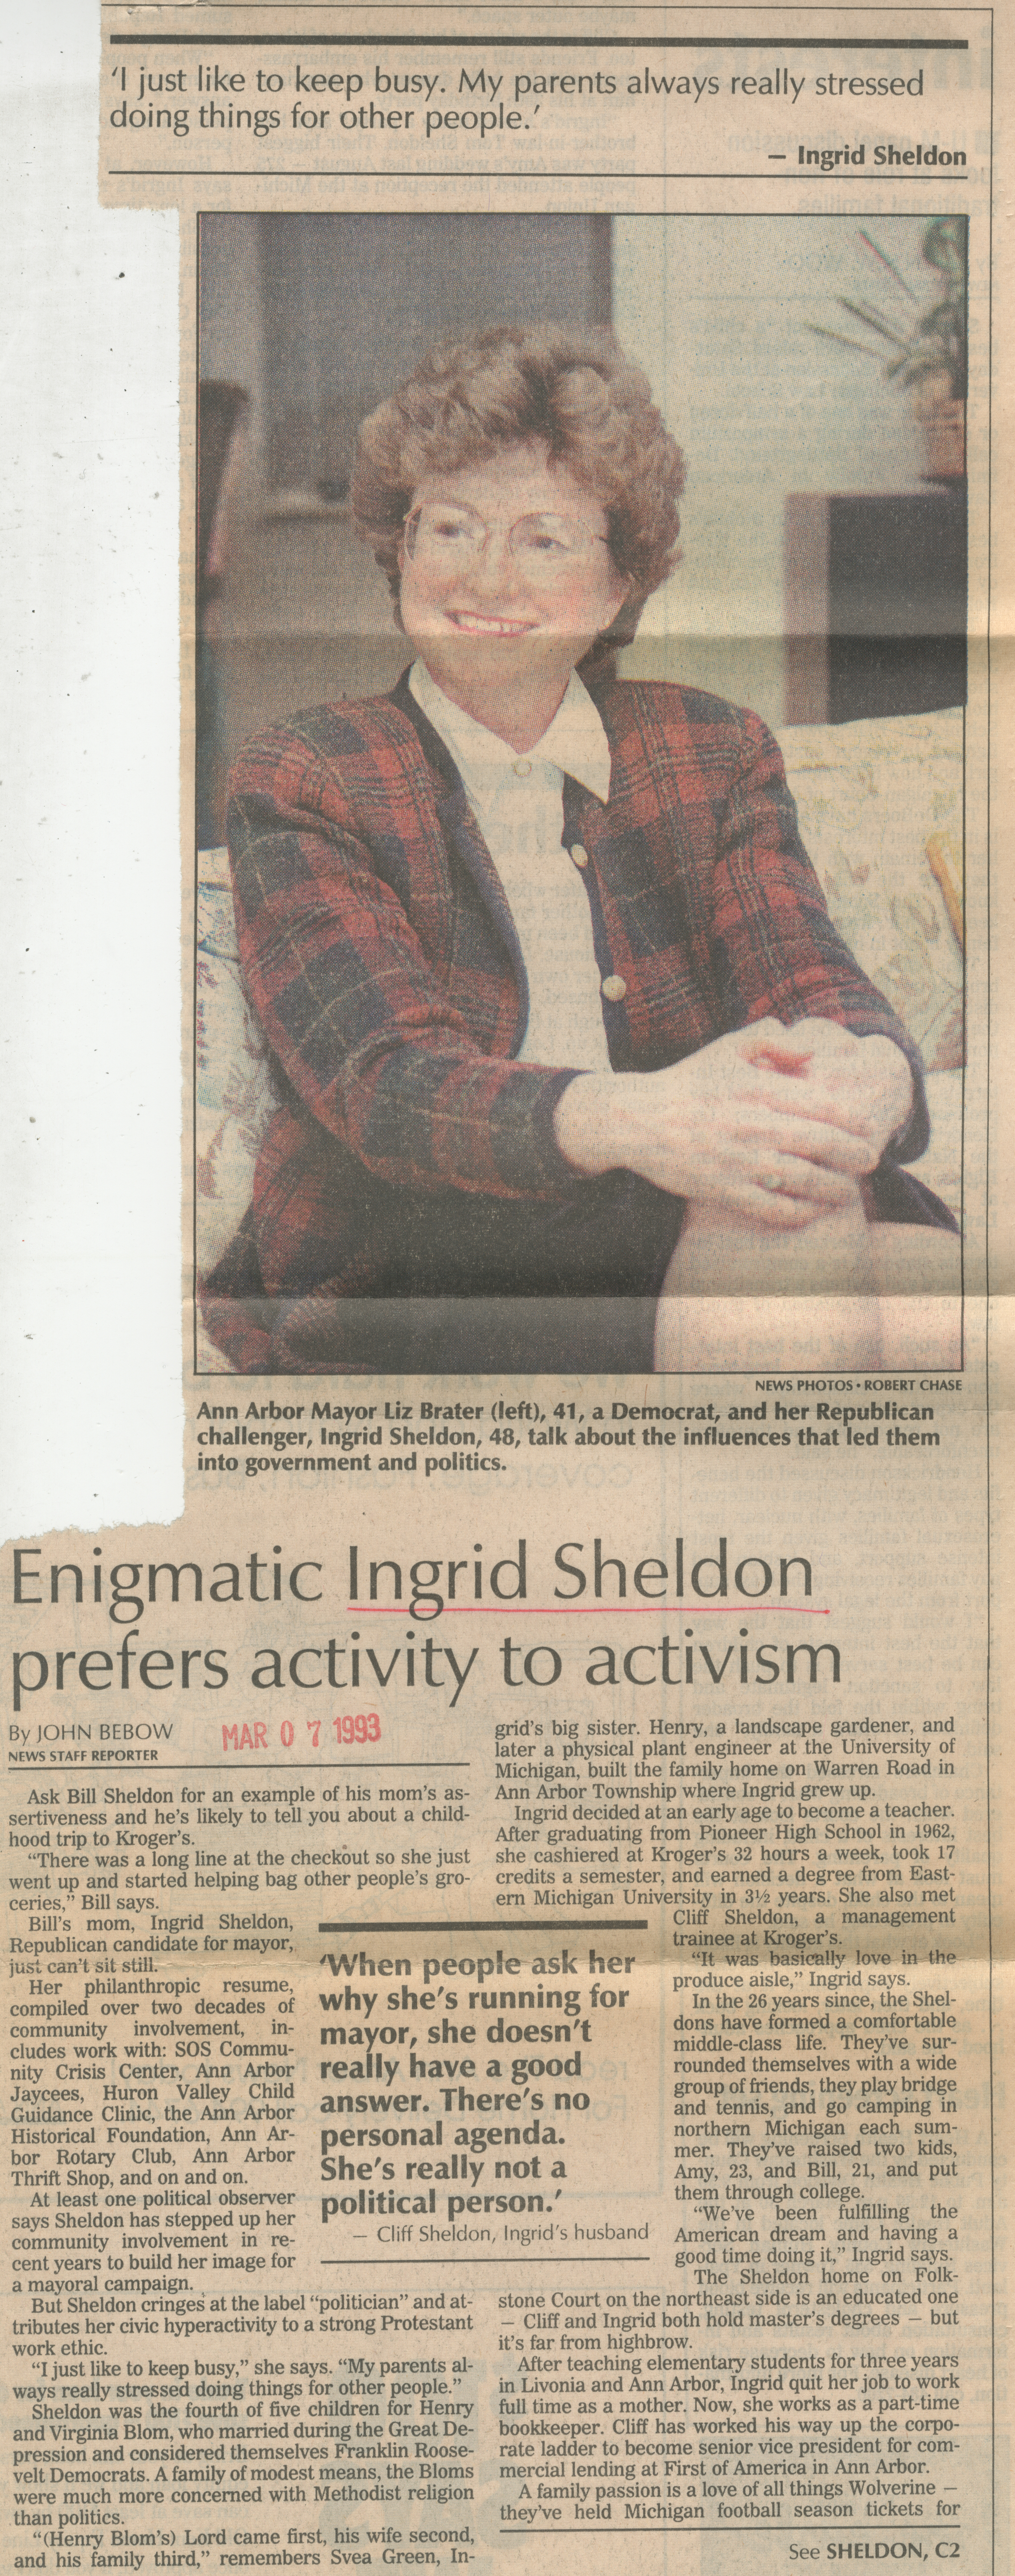 Enigmatic Ingrid Sheldon prefers activity to activism image